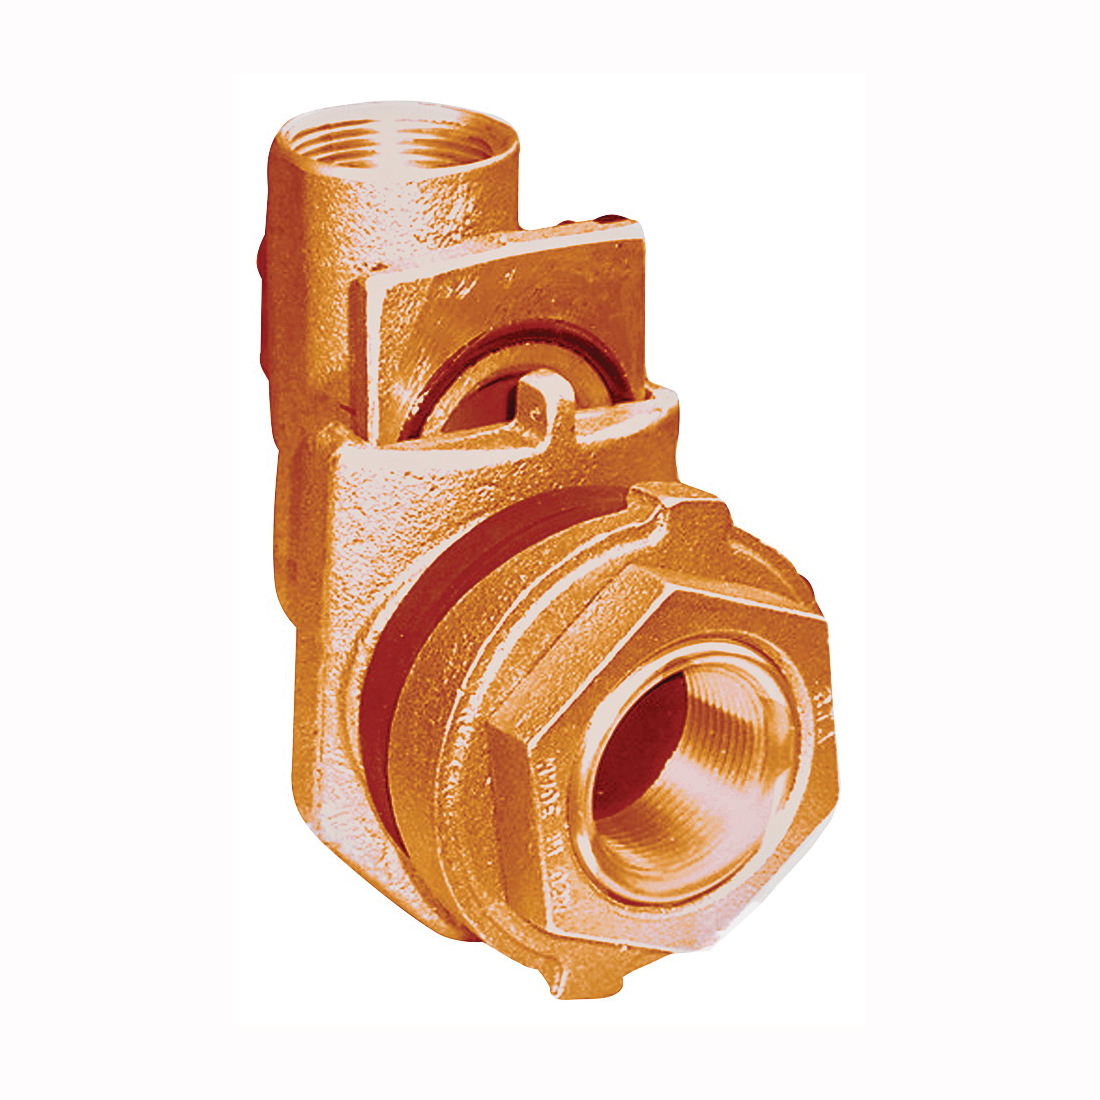 Picture of Simmons 1822SB Pitless Adapter, 1-1/4 in, Silicone Bronze